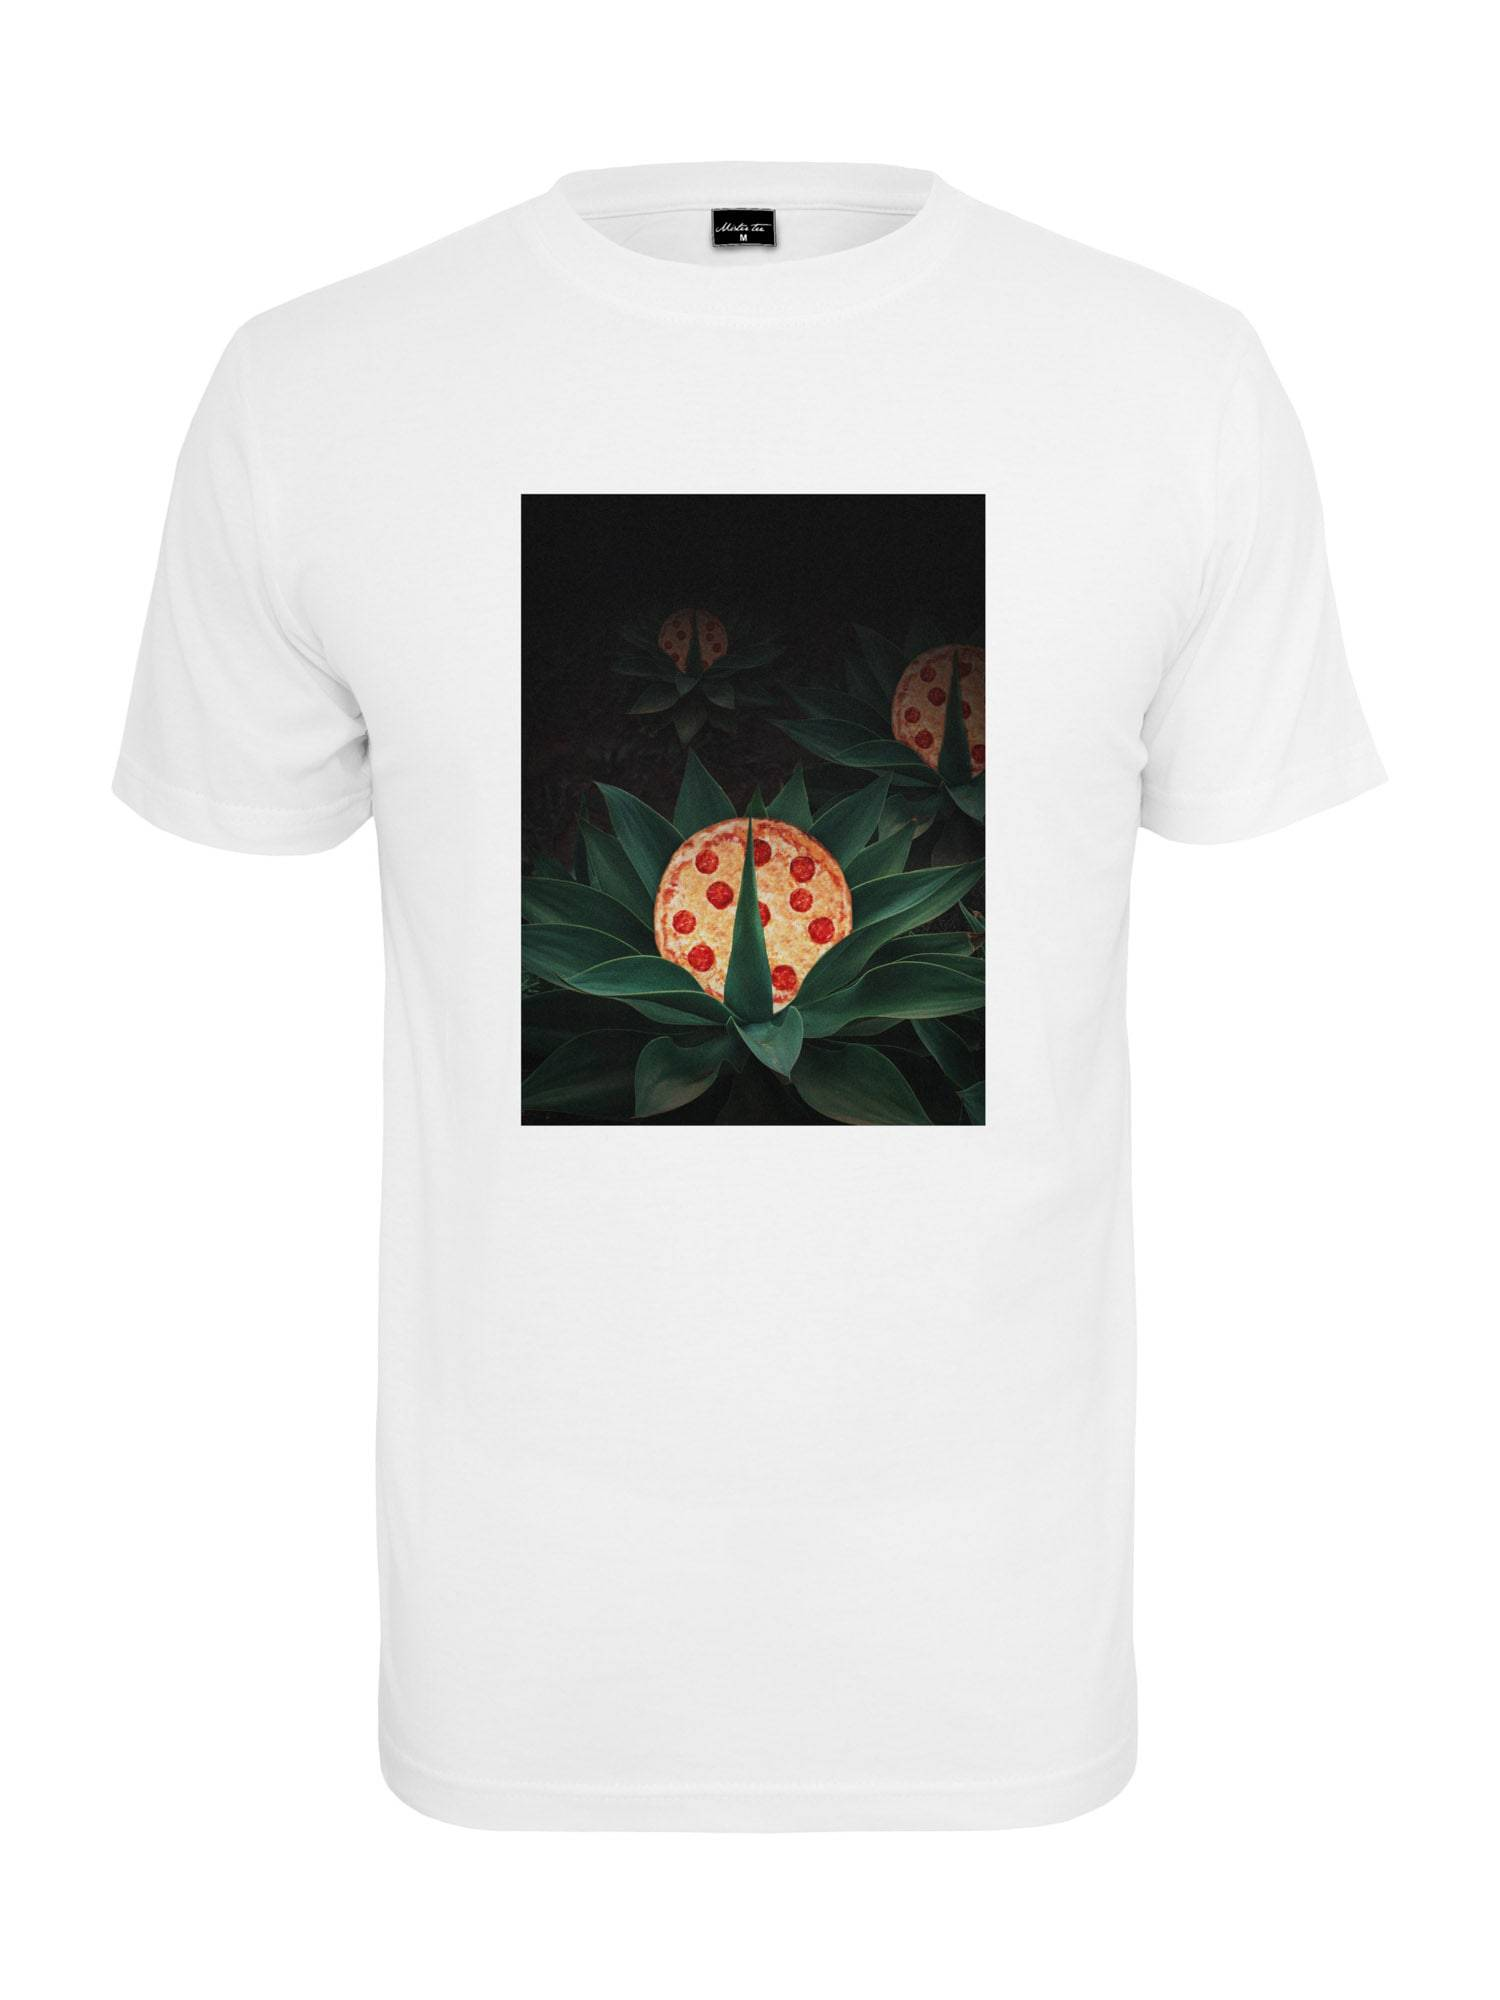 Tee T-Shirt 'Pizza Plant''  - Blanc - Taille: L - male